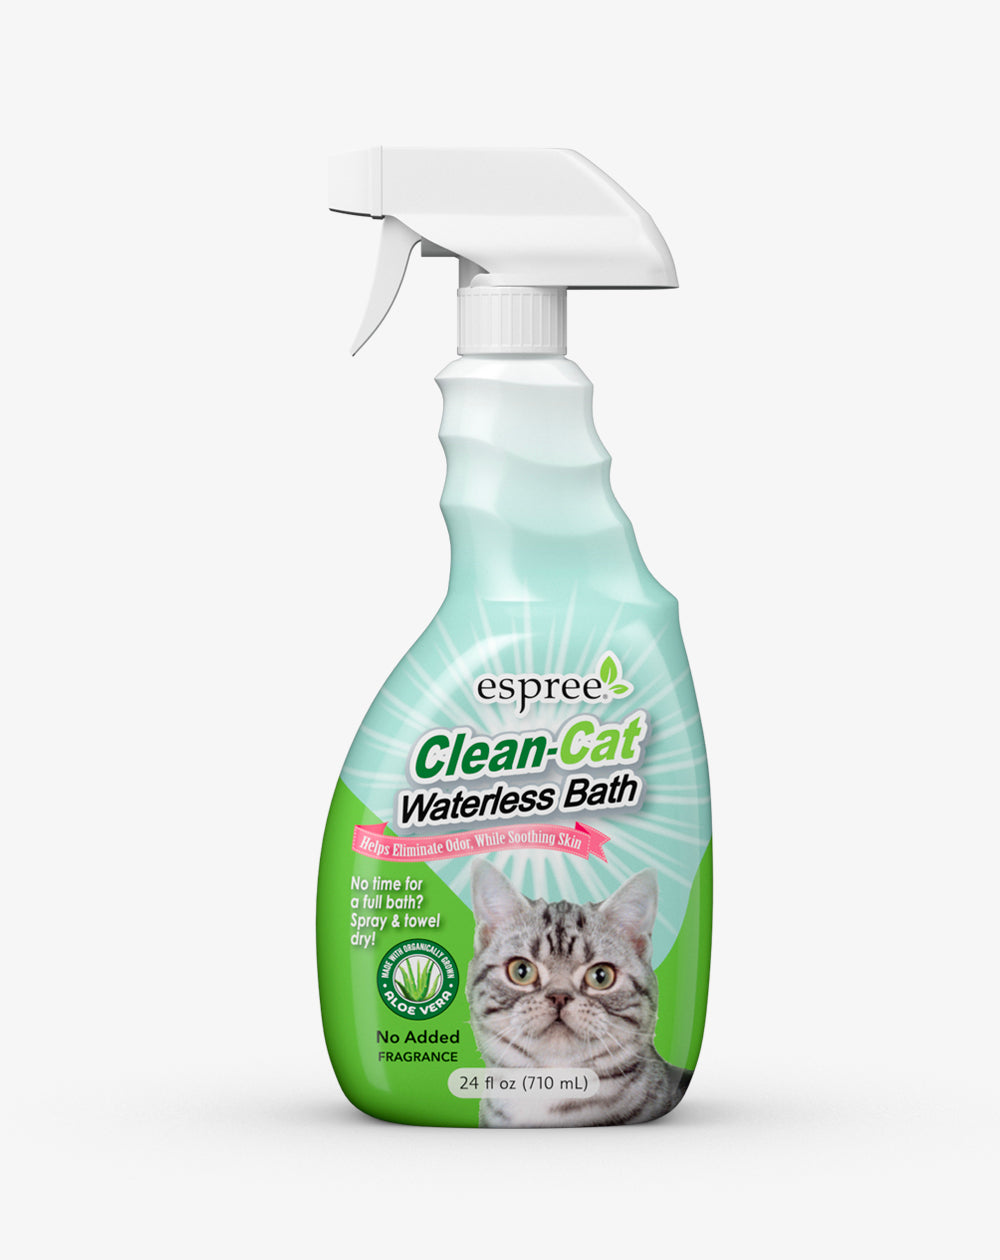 Espree Clean Cat Waterless Bath Spray